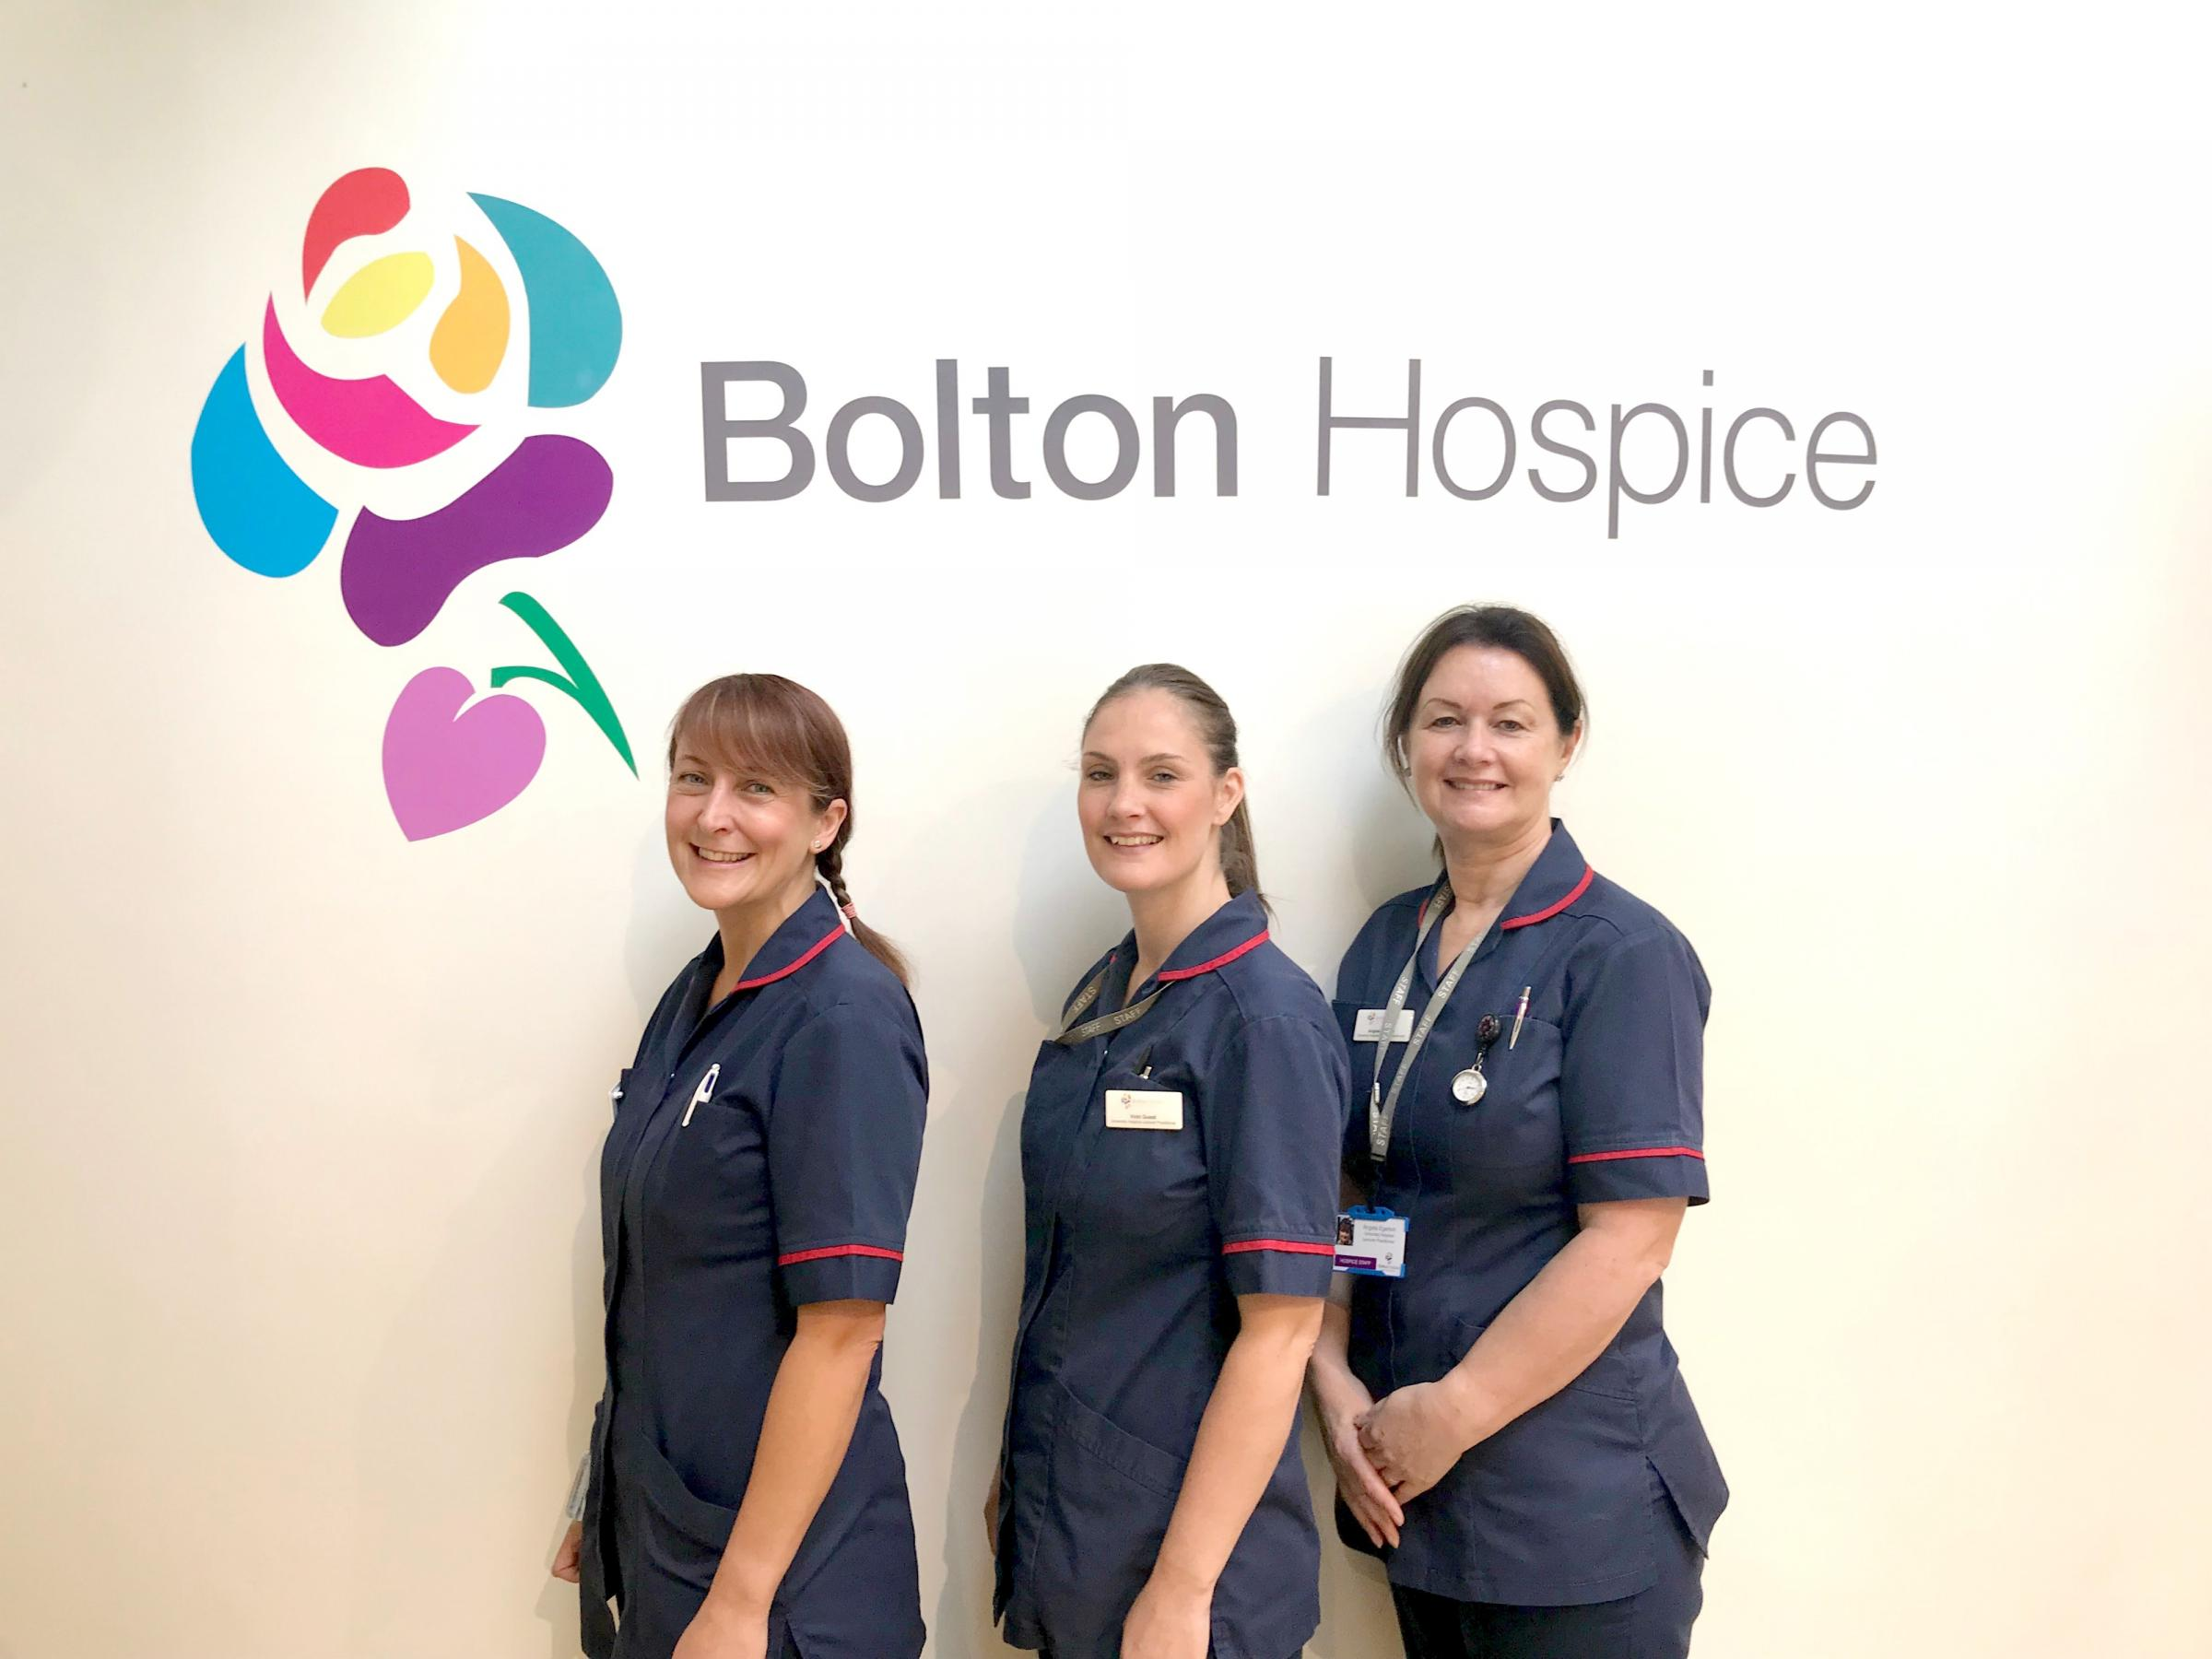 Bolton Hospice is looking for volunteers for its shop